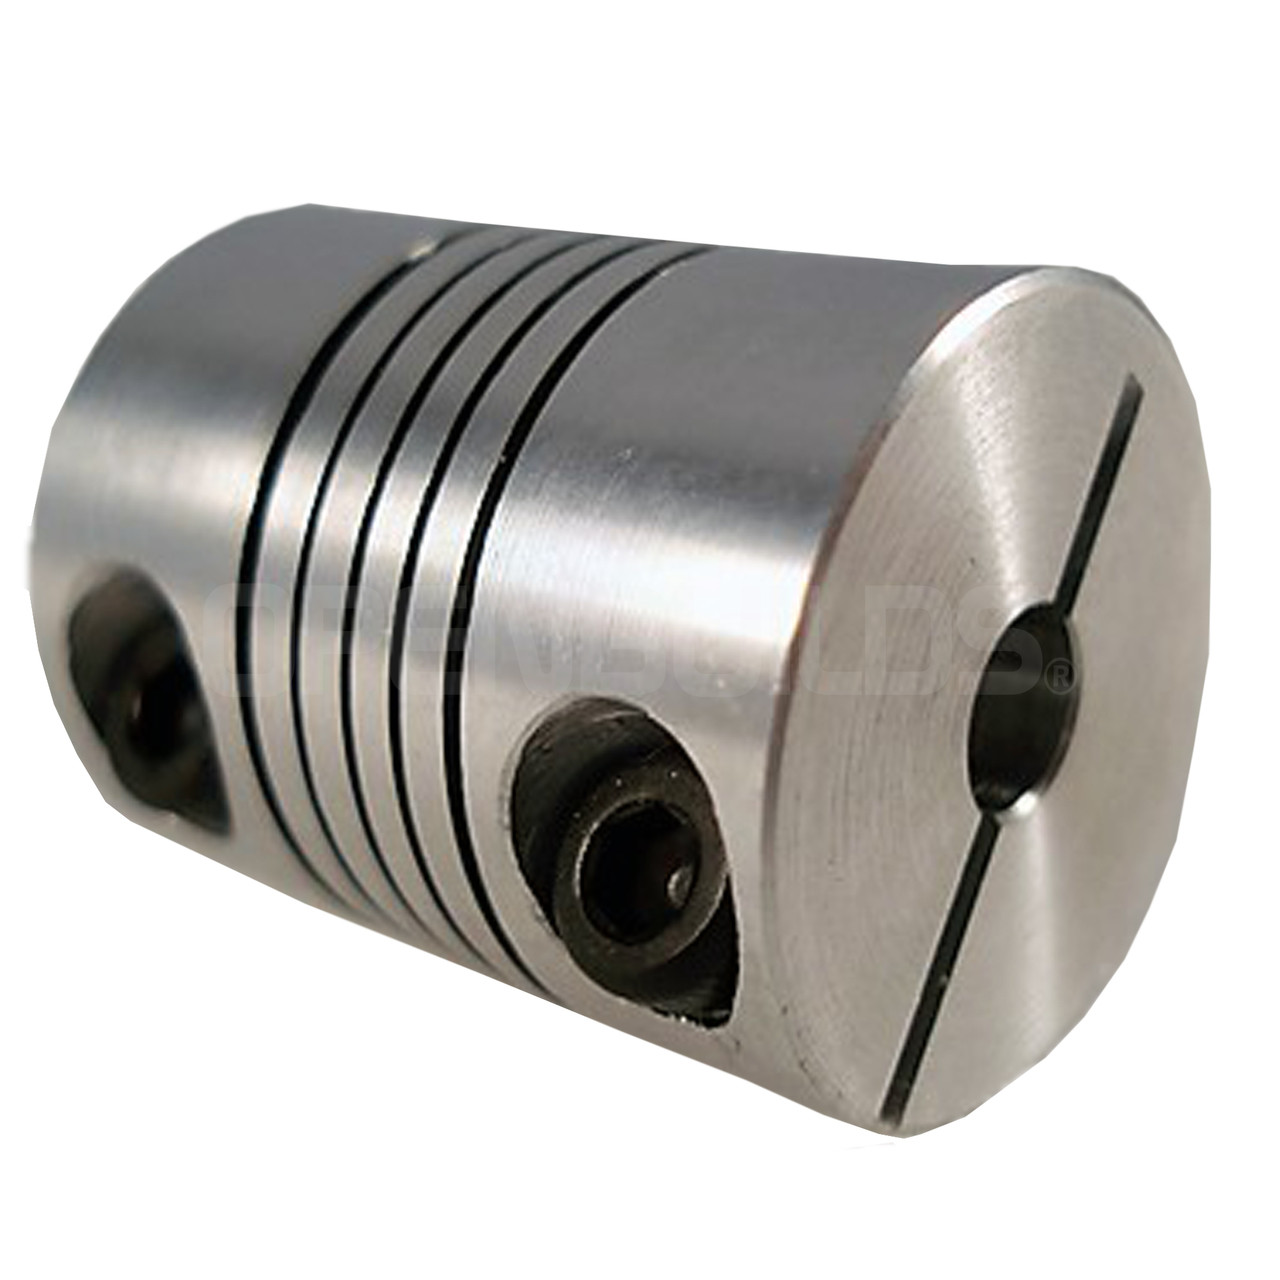 What Is Aluminum Used For >> 5mm * 8mm Flexible Coupling - OpenBuilds Part Store